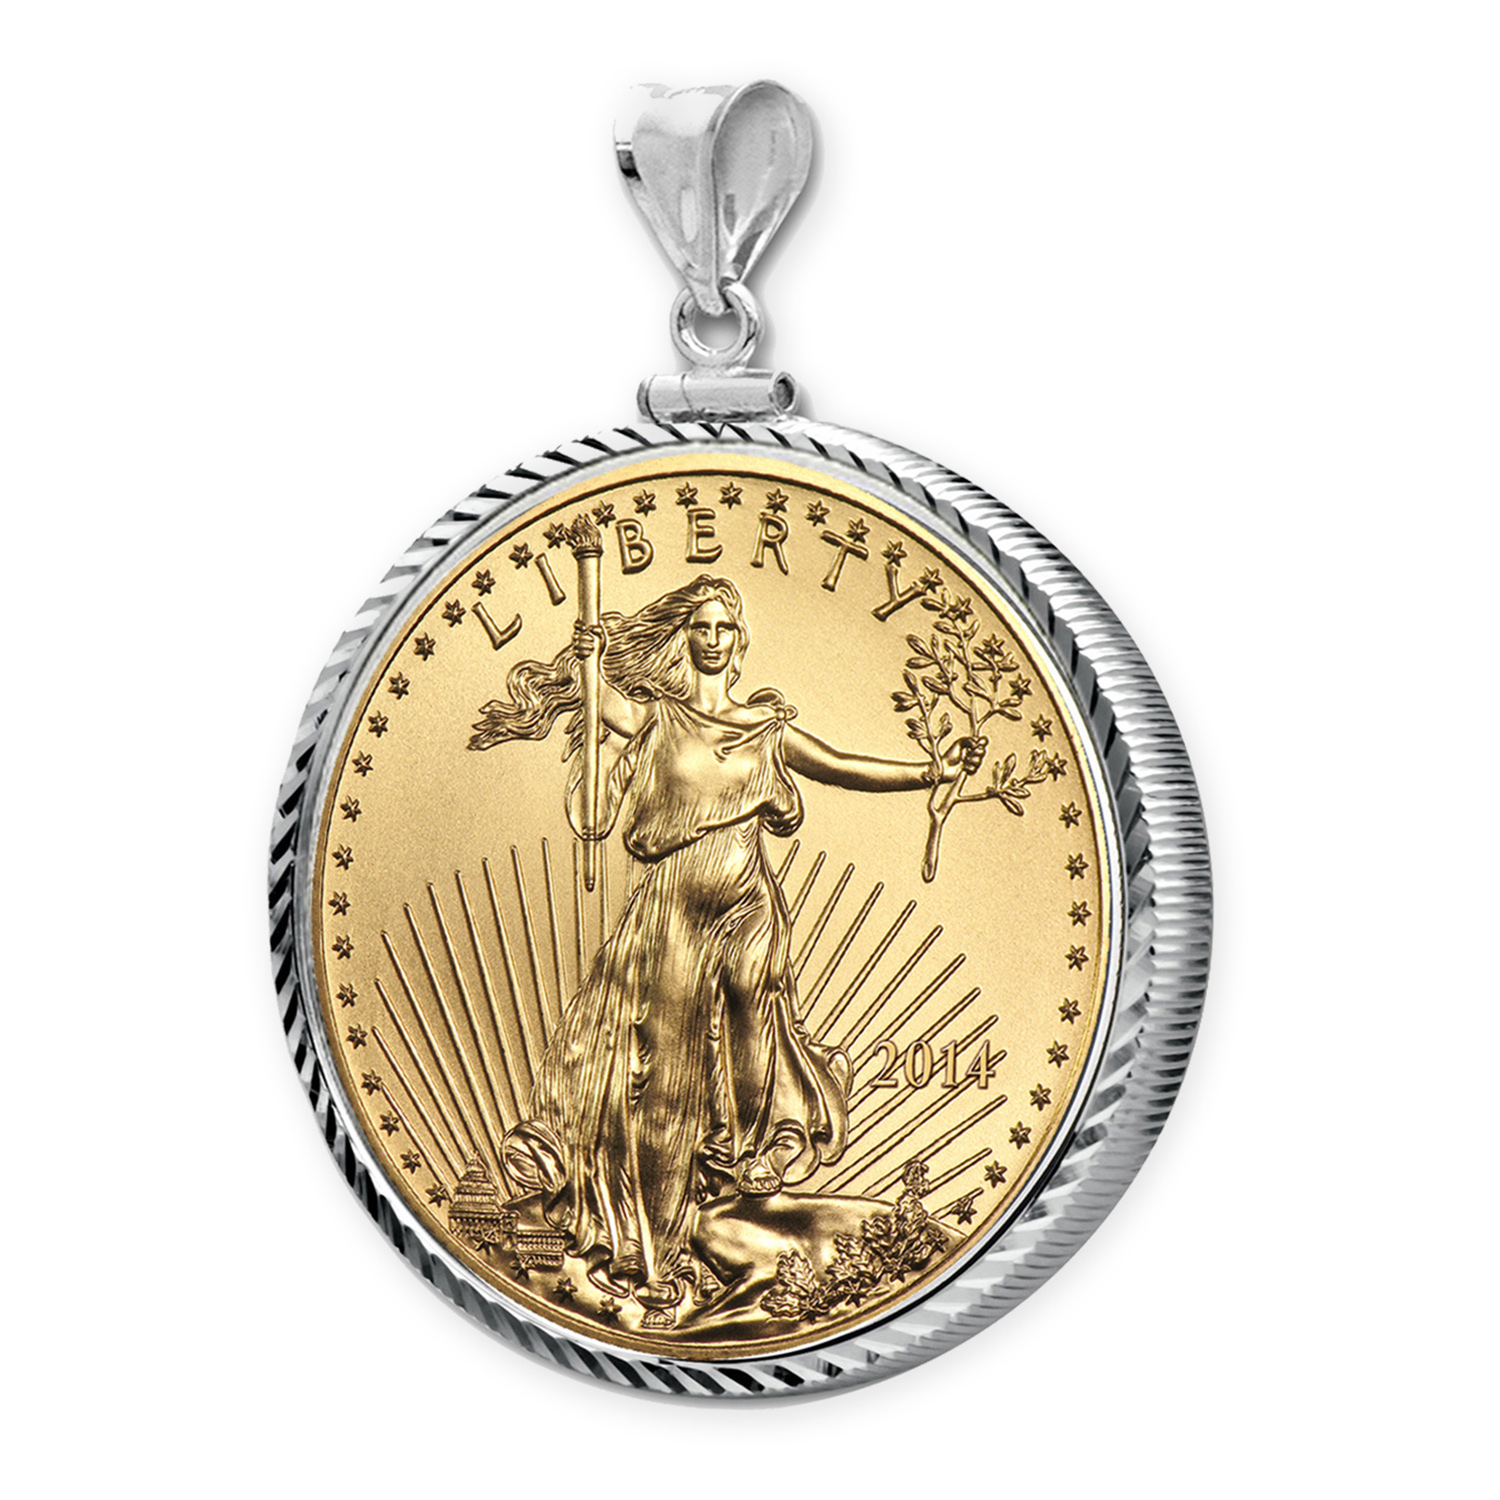 2014 1/10 oz Gold Eagle White Gold Pendant(DiamondScrewTop Bezel)